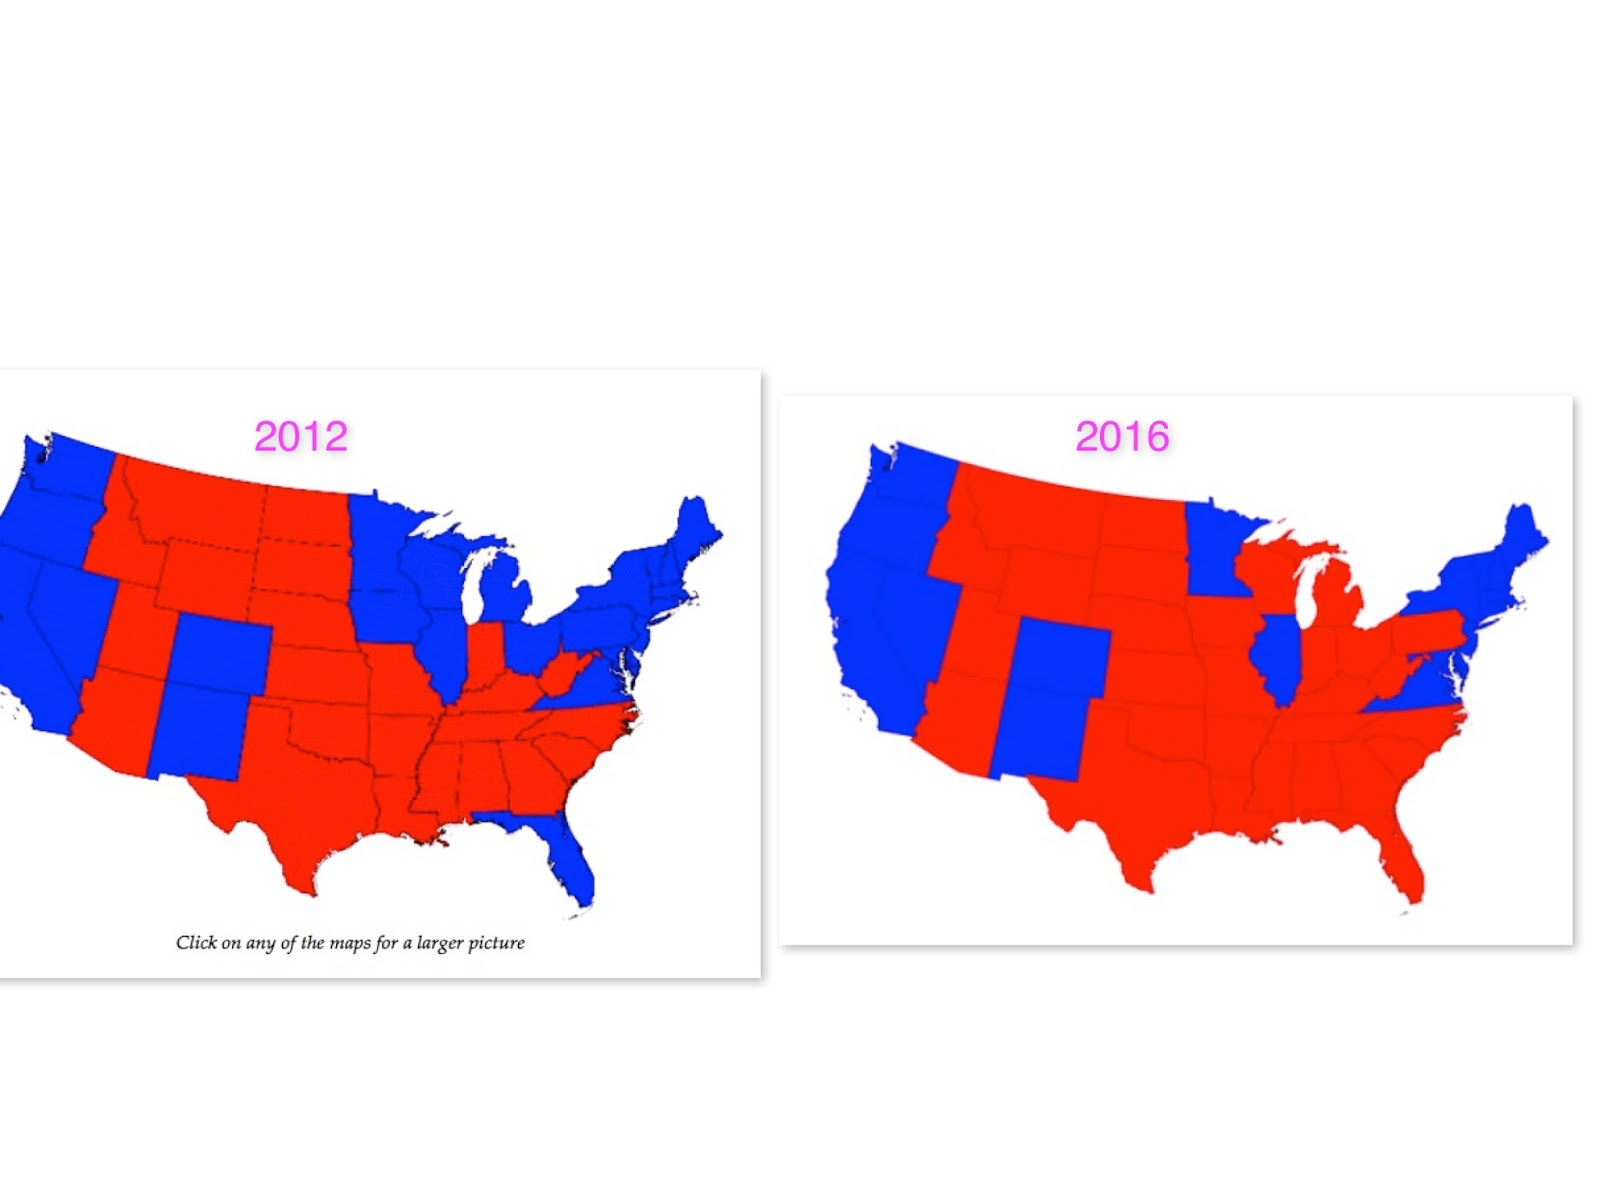 republicans were feeling ecstatic when they viewed the increase in red in the map after the 2016 presidential election